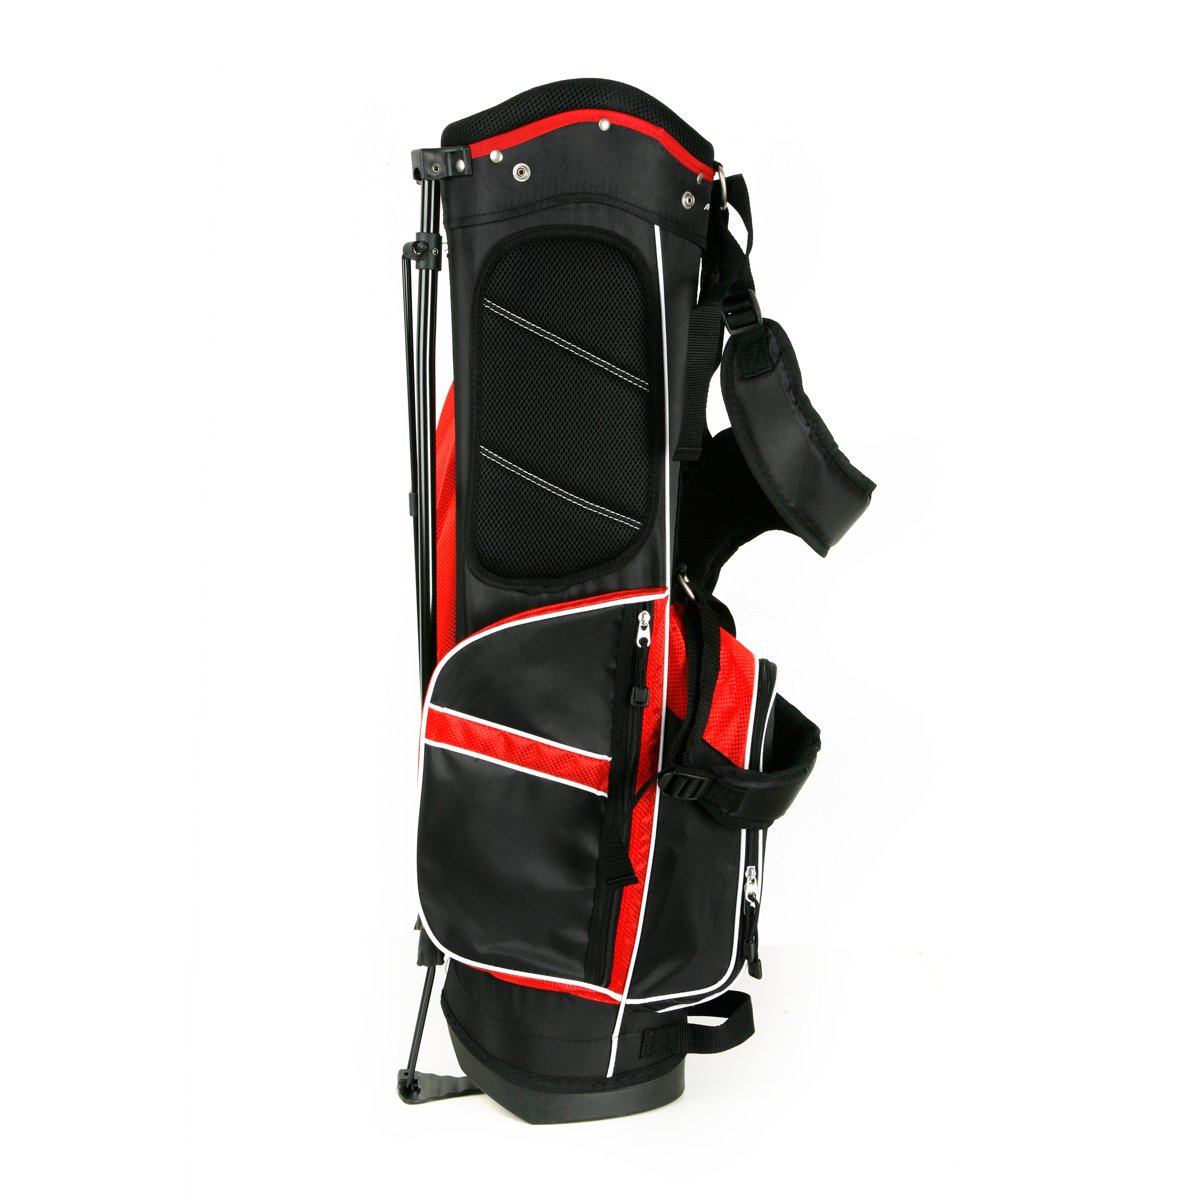 Amazon.com: Afinidad zls Soporte Bolsa: Sports & Outdoors